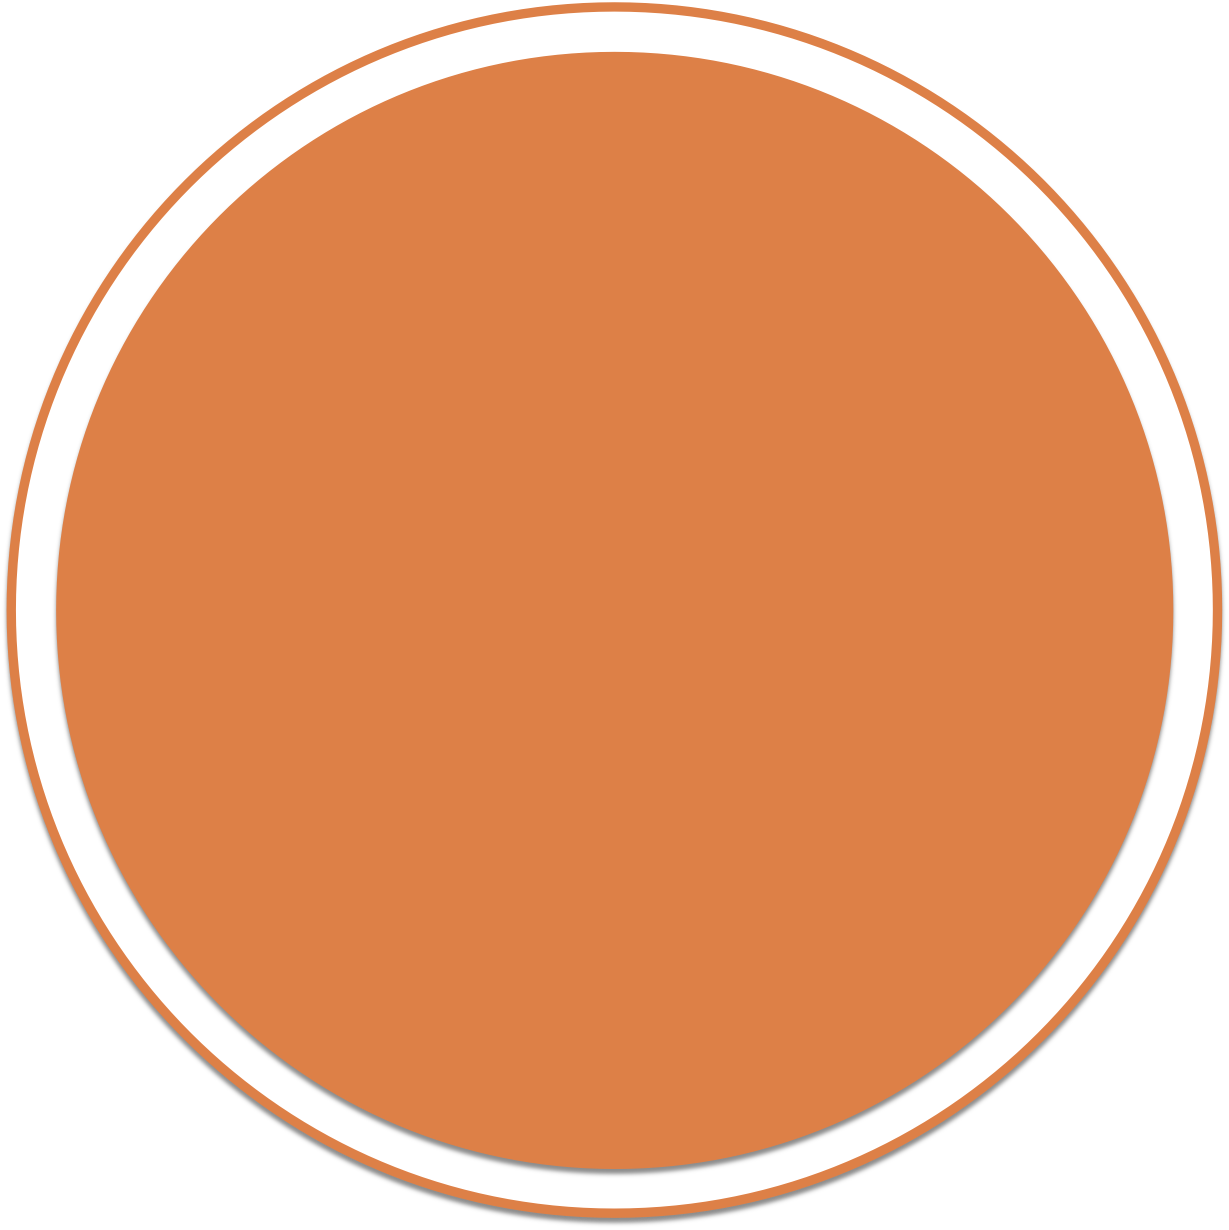 Dot clipart bullet point. Image edi orange circle